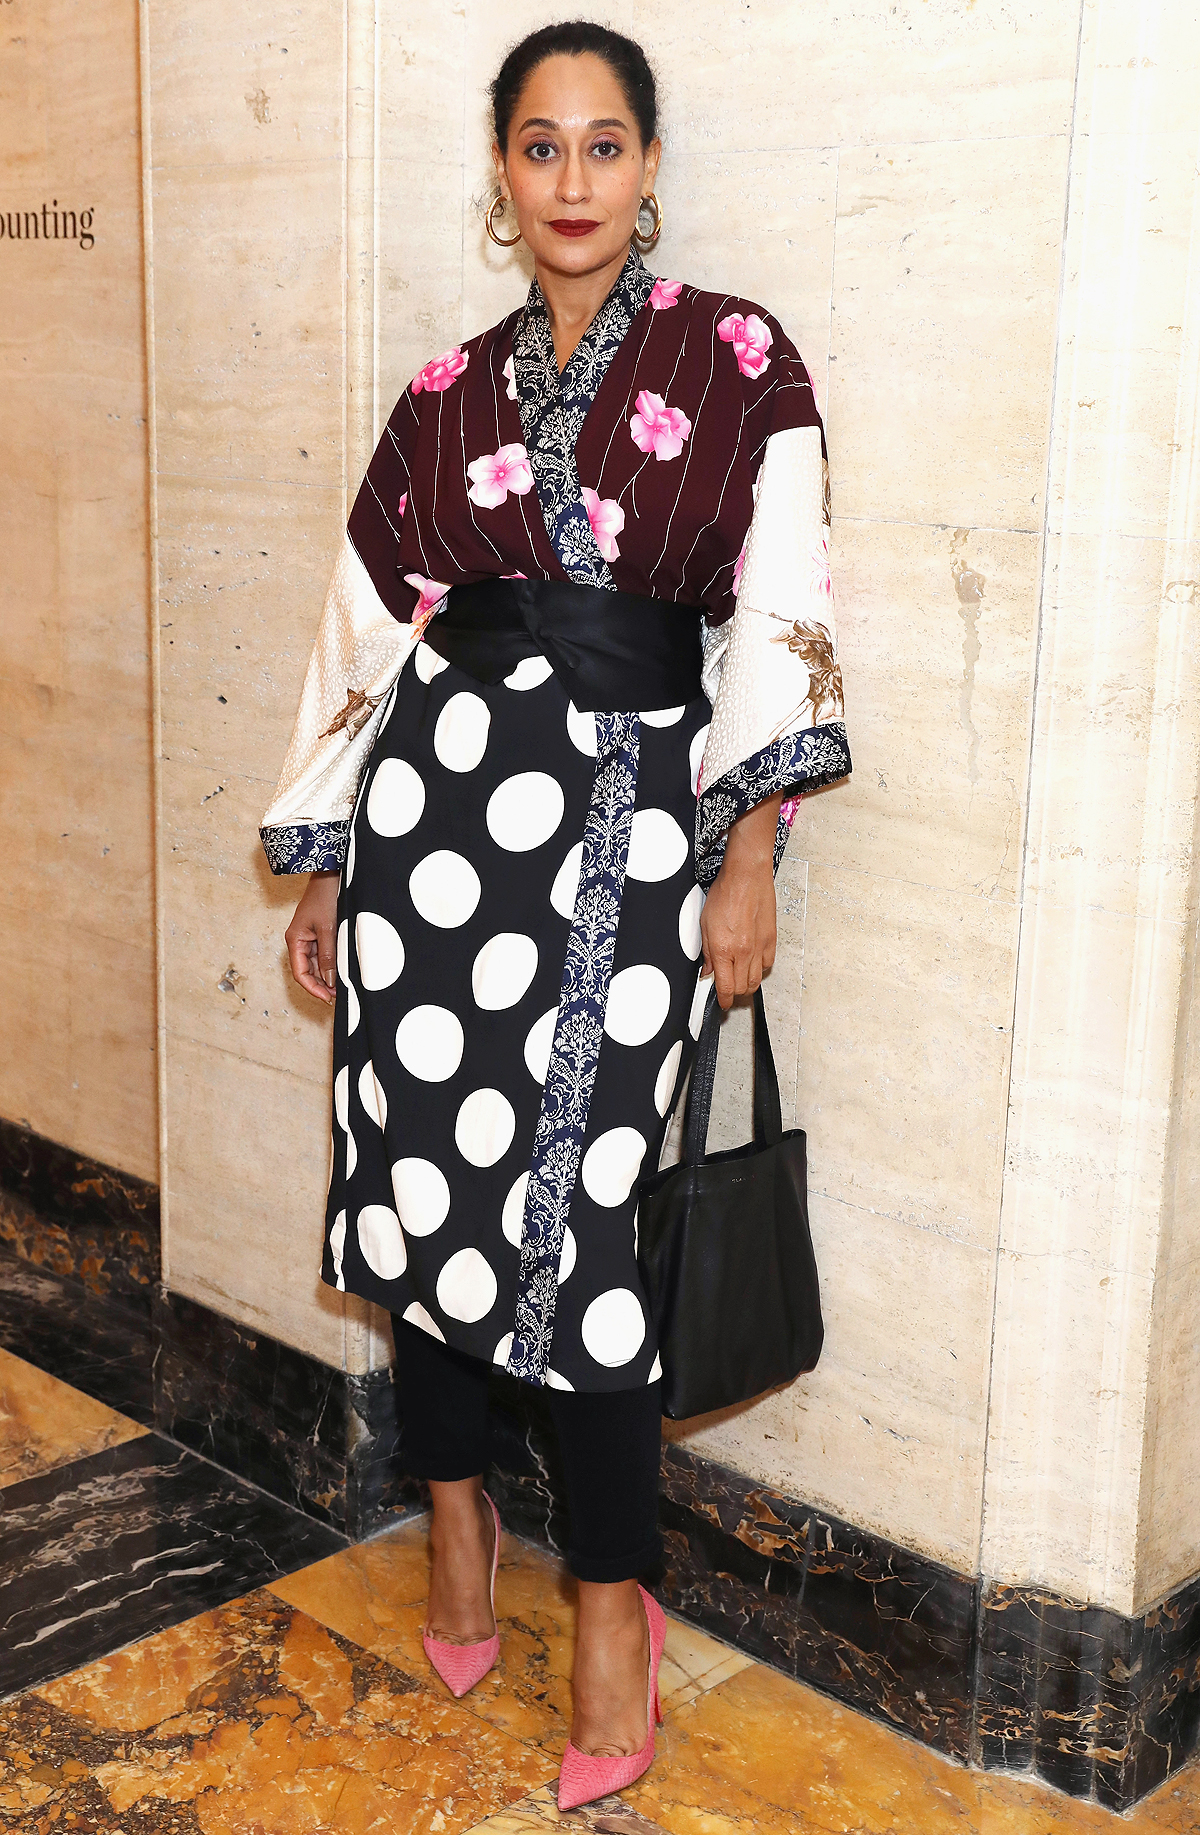 MATCHESFASHION.COM X DURO OLUWU Dinner